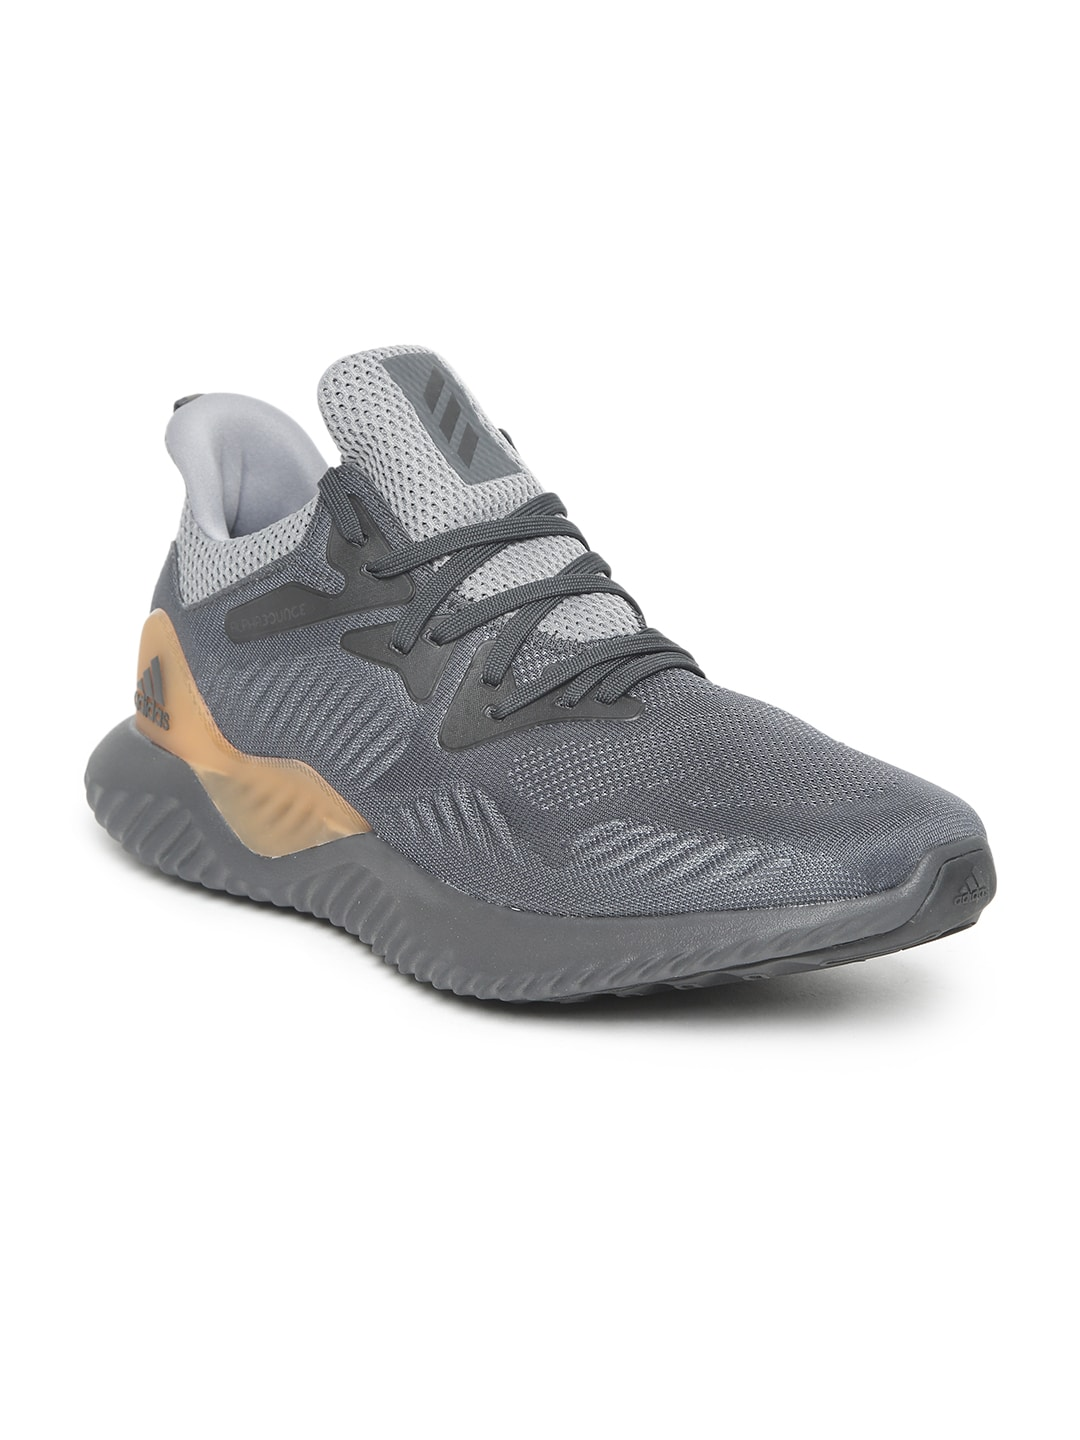 7510cfe0f61a5 Alphabounce - Buy Alphabounce online in India